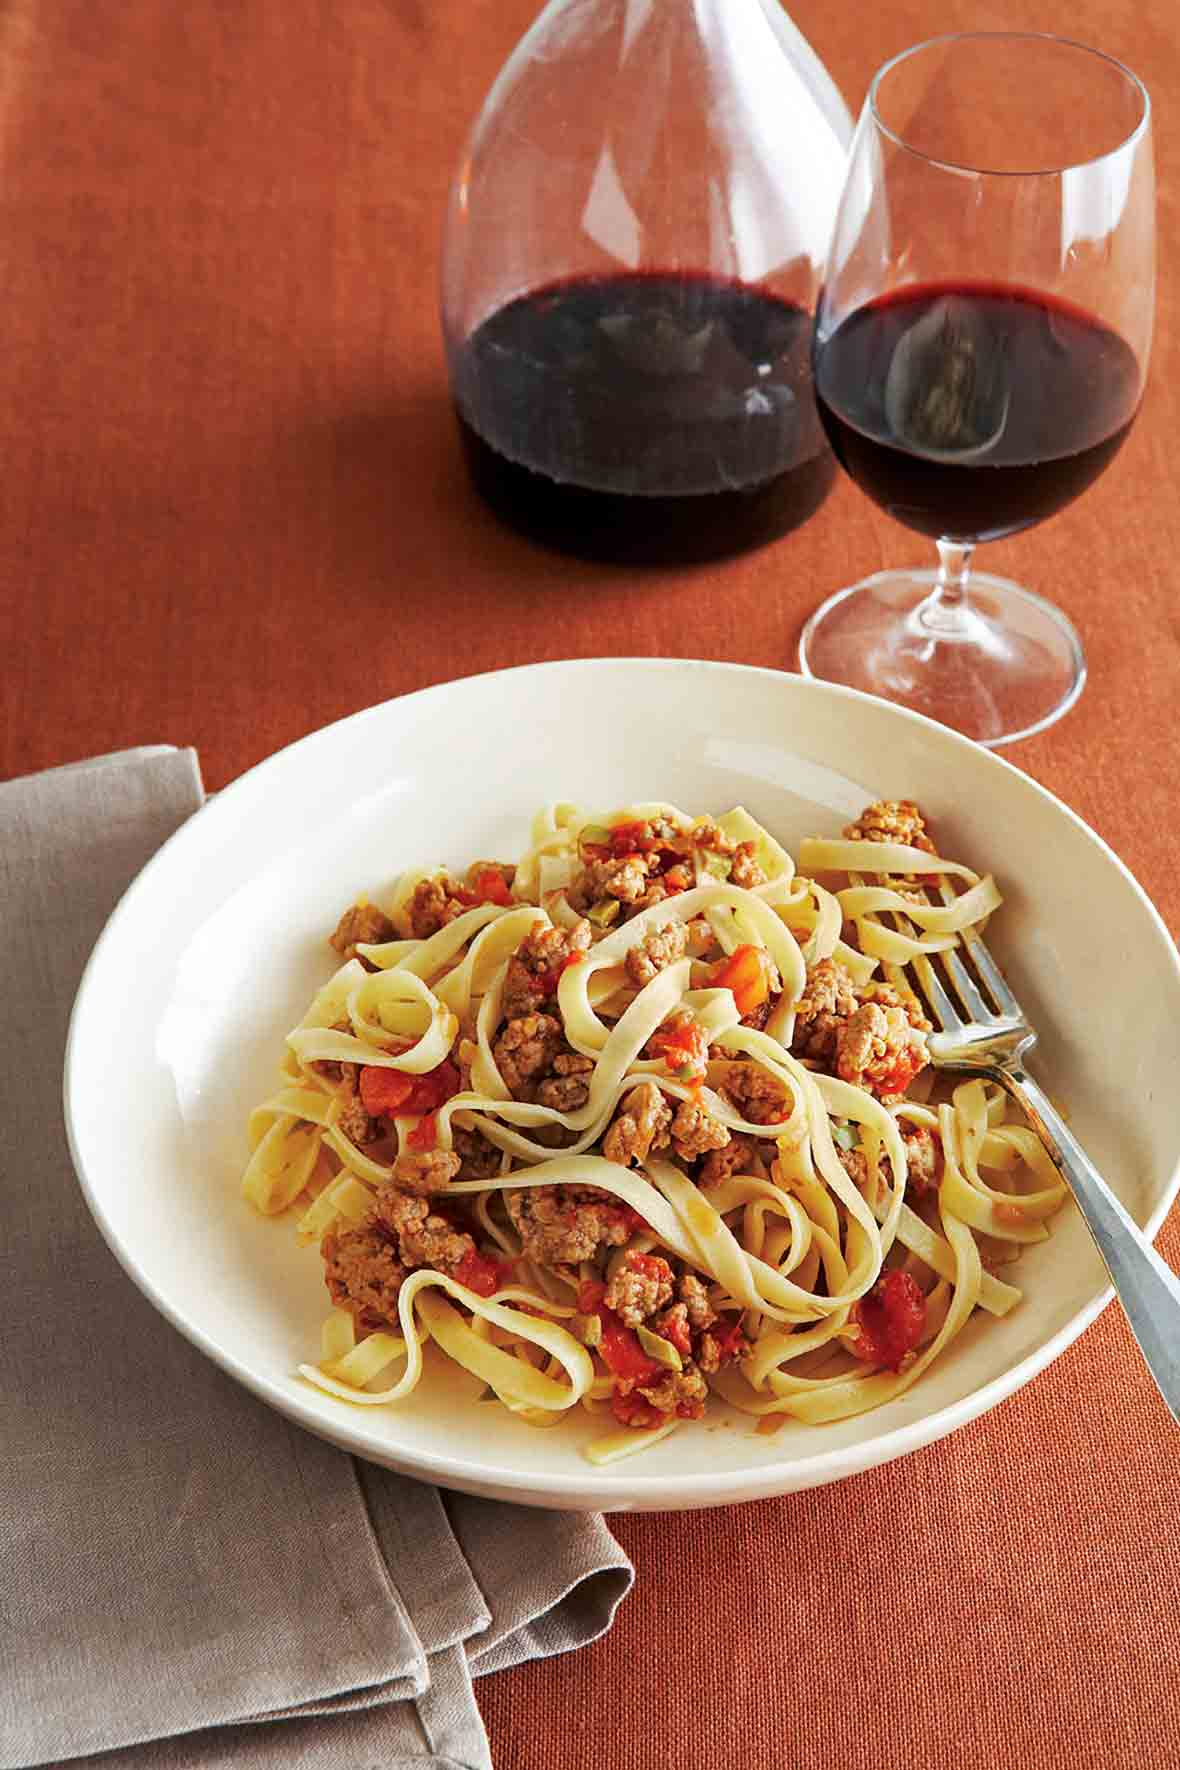 A wide white bowl filled with fettuccine with a savory veal sauce and a carafe and glass of wine in the background.